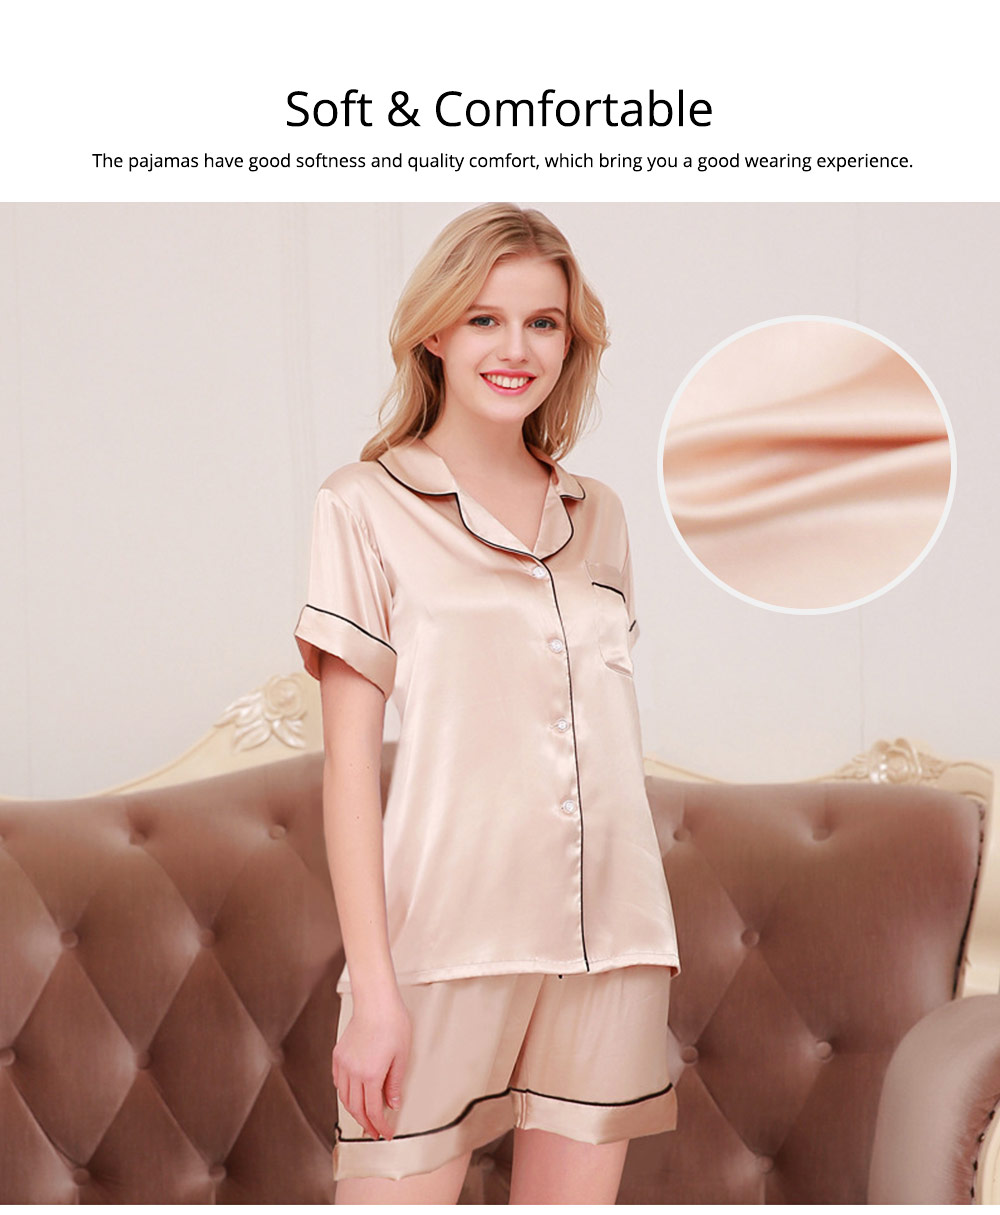 Couple Nightclothes Suit, Polyester Material Silky Feeling Soft Pajamas, Skin-friendly Nightgown Short Sleeve Shirts Pants, Breathable Nightdress for Couples Summer 3